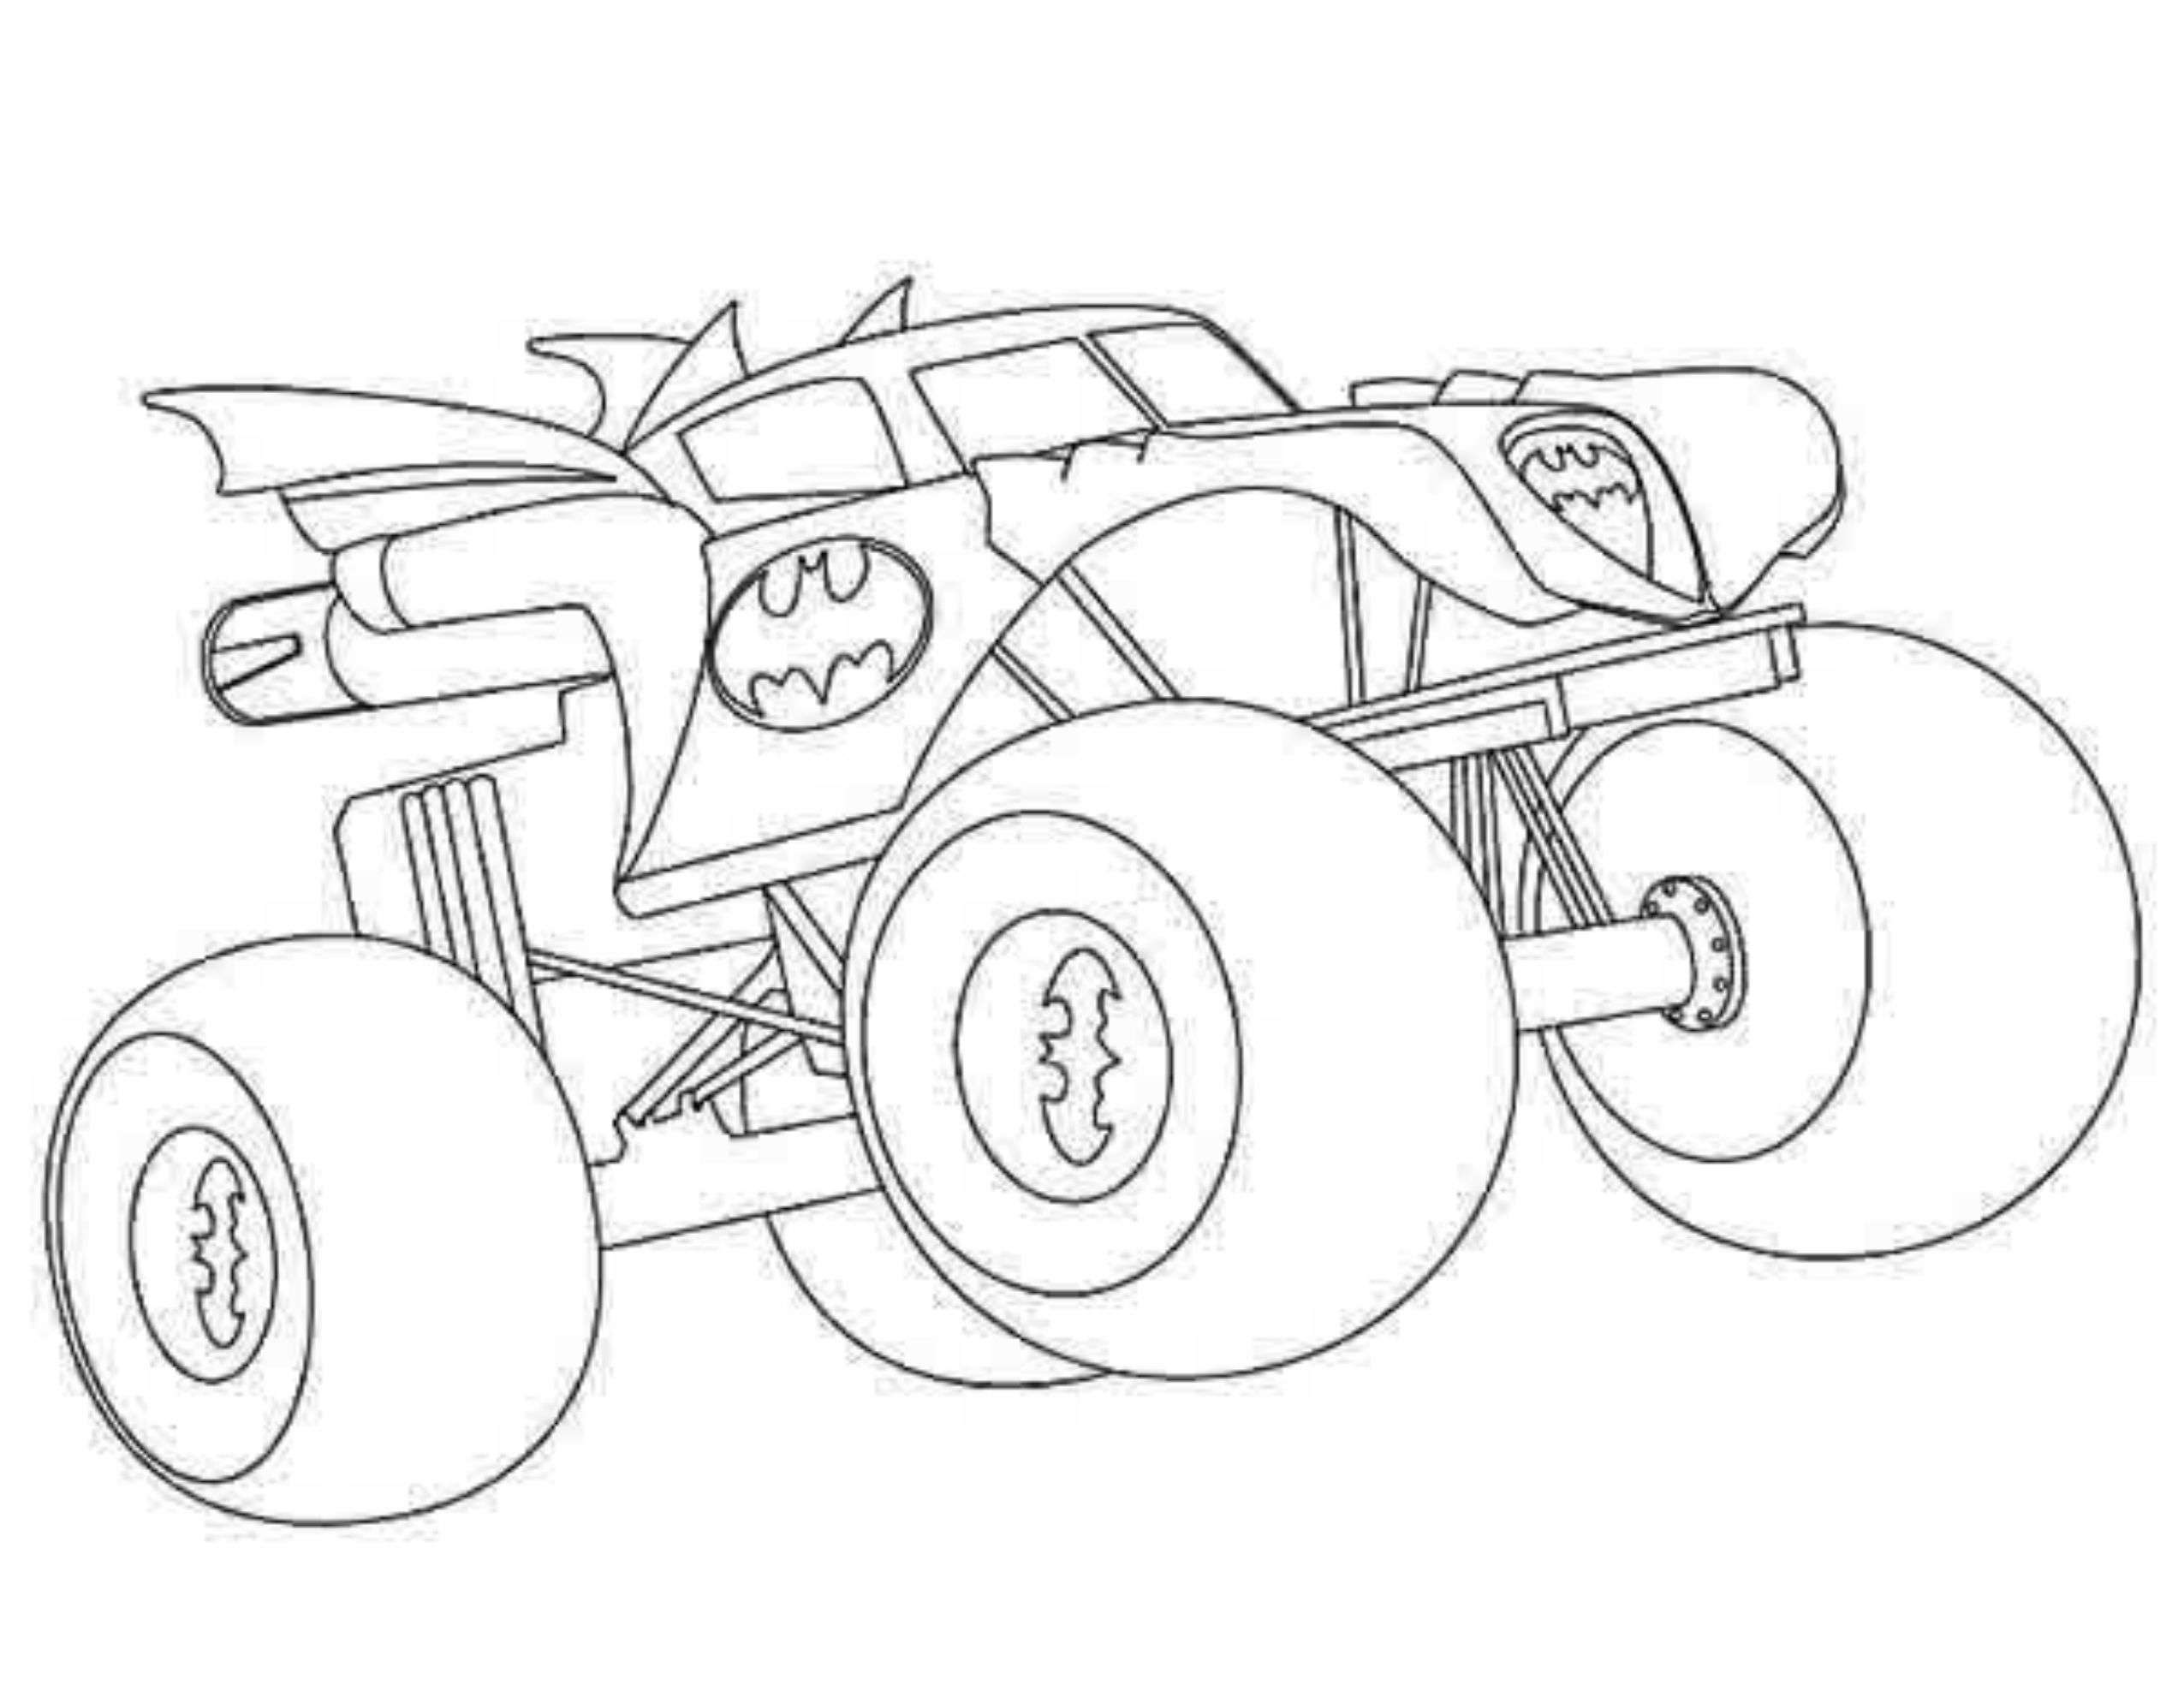 monster truck printable coloring pages max d monster truck coloring page free printable monster printable coloring truck pages